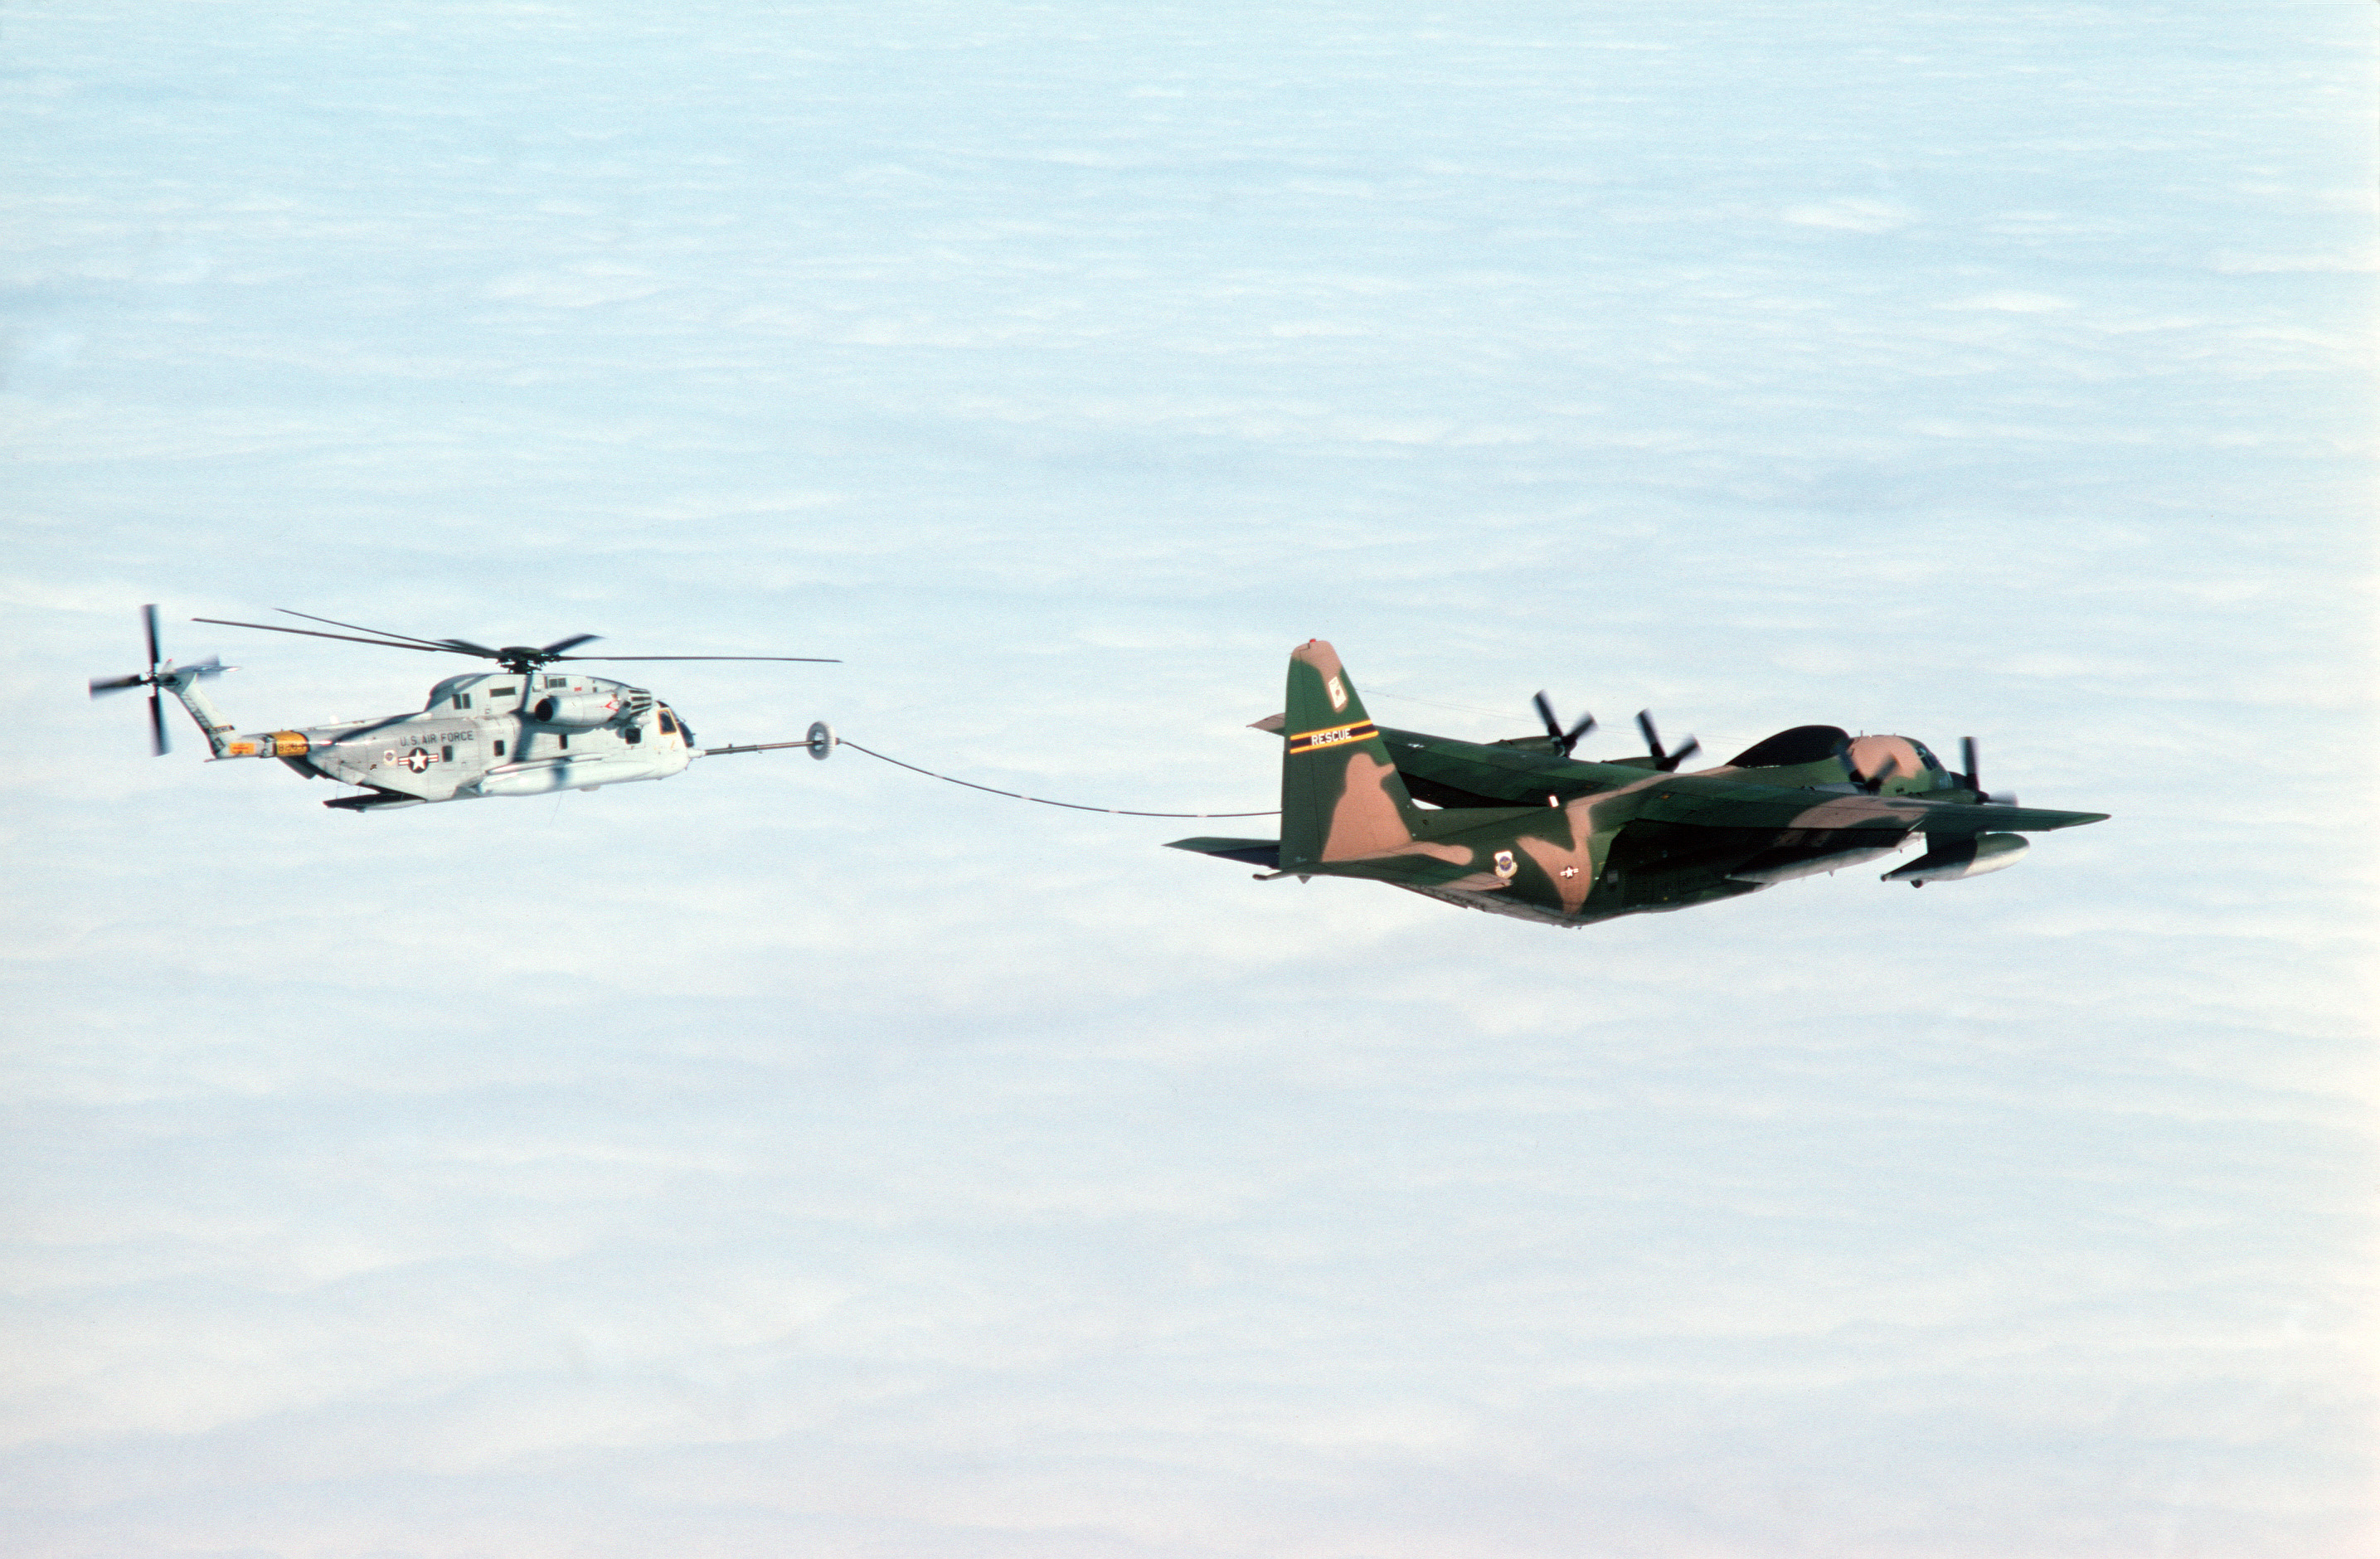 super jolly green giant helicopter with File Hc 130p Refueling Hh 53c Off Greenland 1978 on Sikorsky Mh 53 Pave Low 68 10928 usa Us Army 67320 also Mh 53j moreover One For All Digital Aerial further H 53 Pics besides File A 1H.